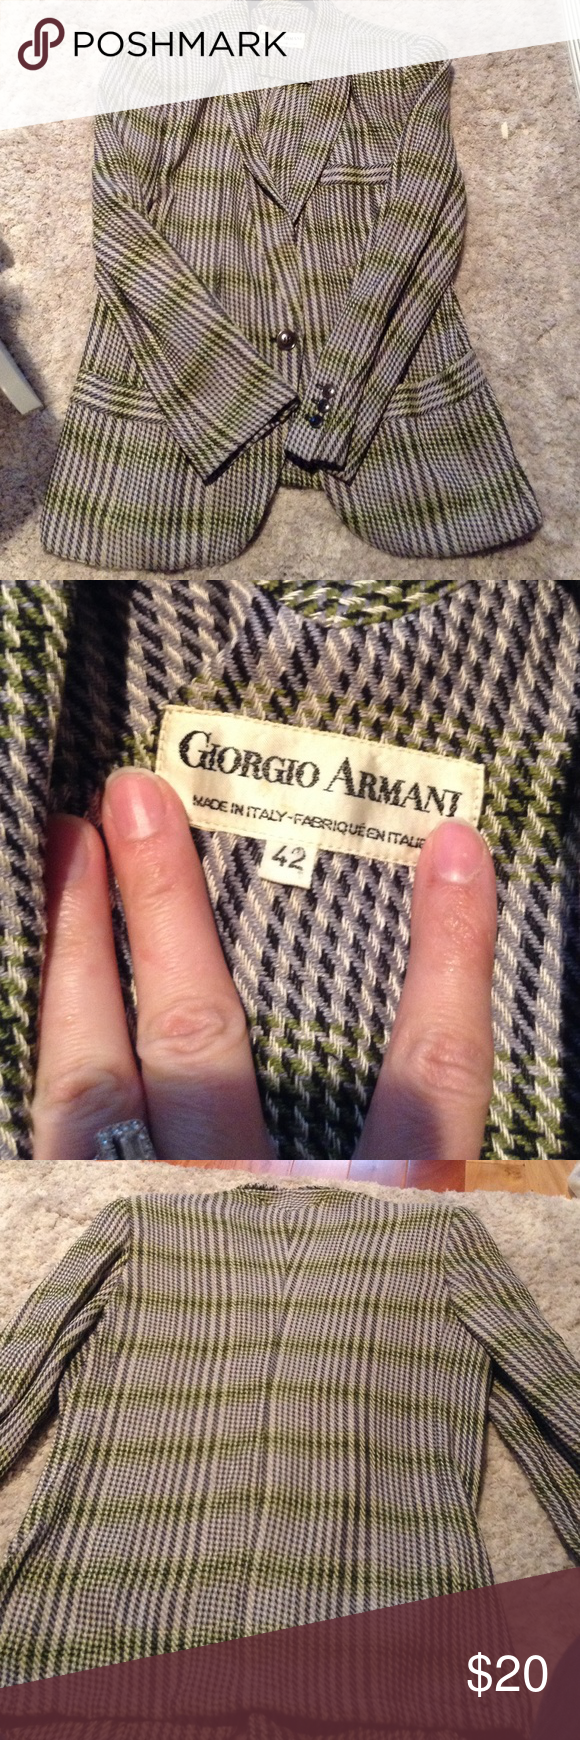 Vintage Armani blazer Cute gray, black, green blazer!  One button closure one breast pocket and two lower pockets.  Good vintage condition! Size 42 Giorgio Armani Jackets & Coats Blazers